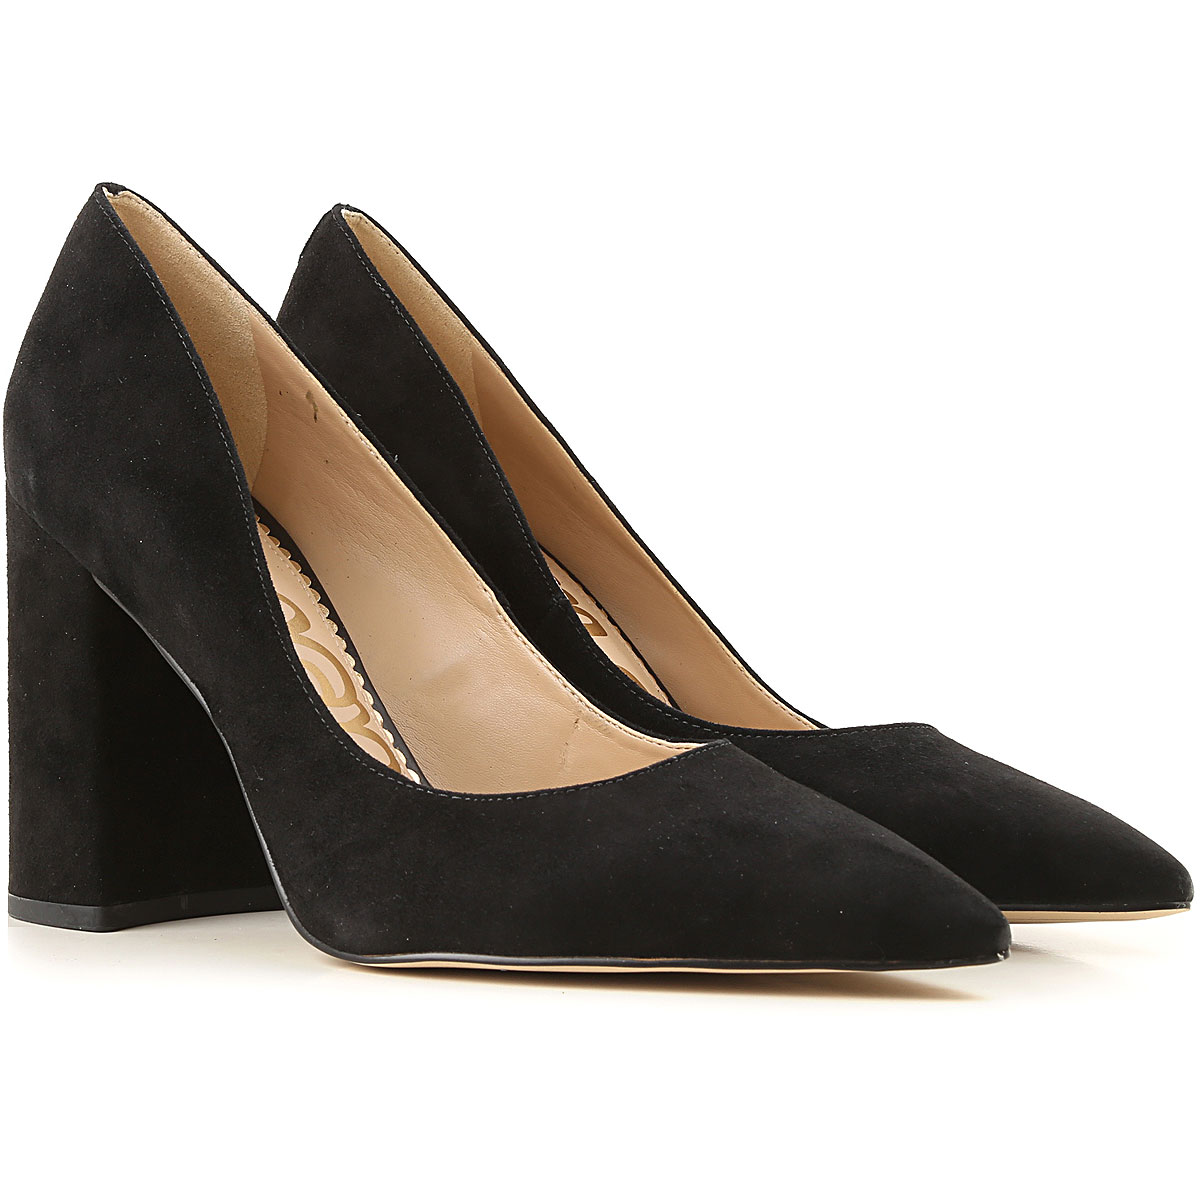 Sam Edelman Pumps & High Heels for Women On Sale, Black, Suede leather, 2019, 6 9.5